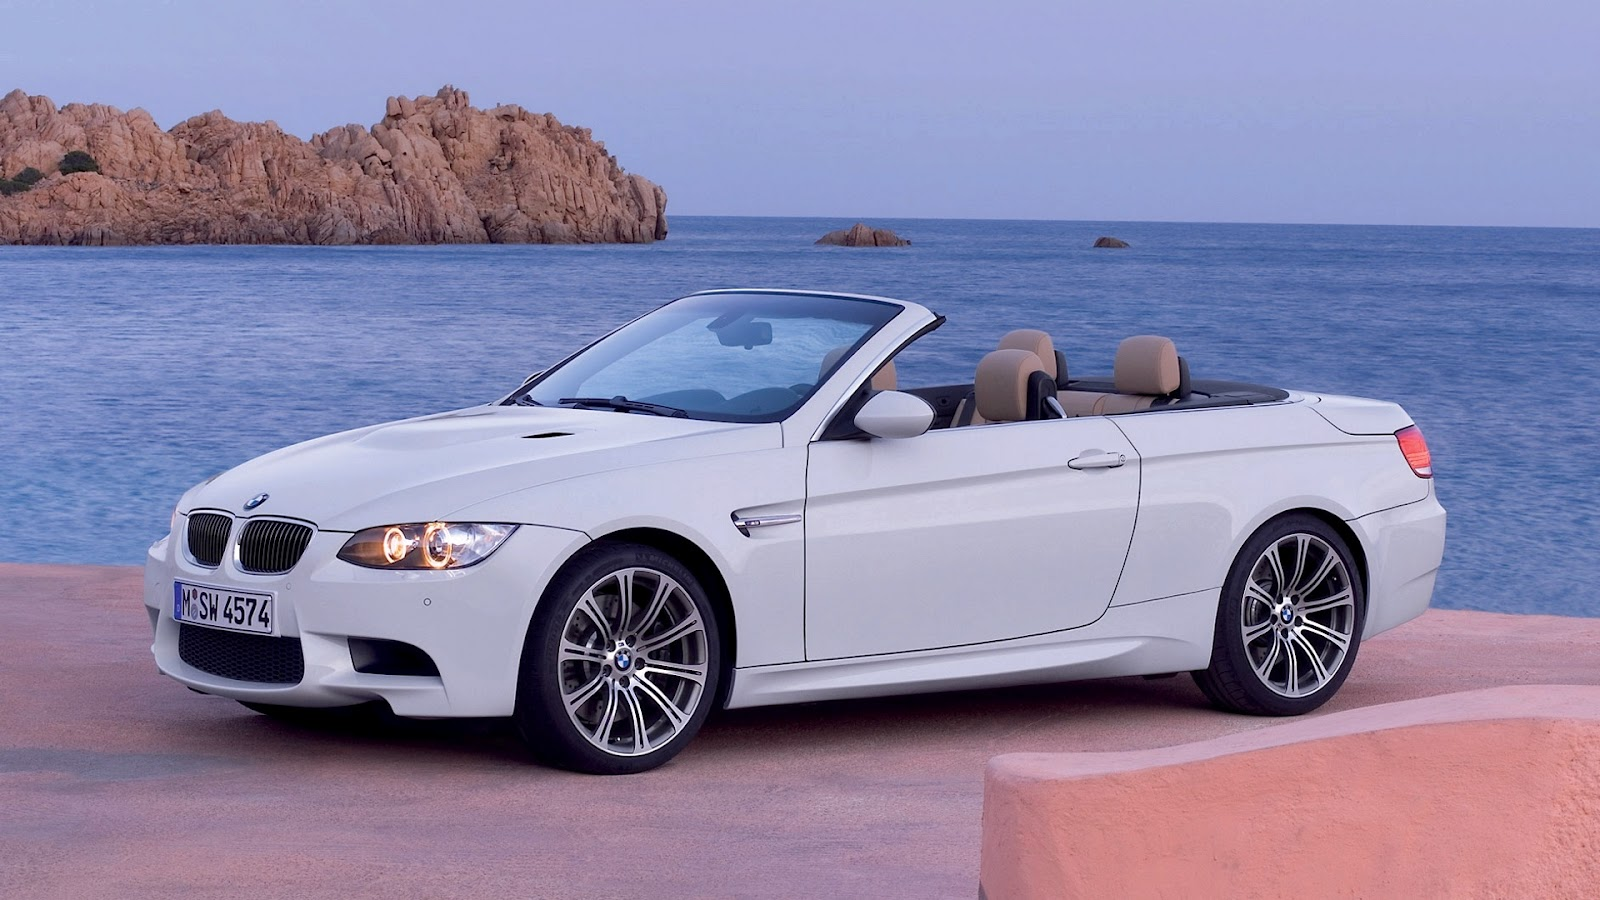 bmw 335i convertible for sale bmw forum autos post. Black Bedroom Furniture Sets. Home Design Ideas